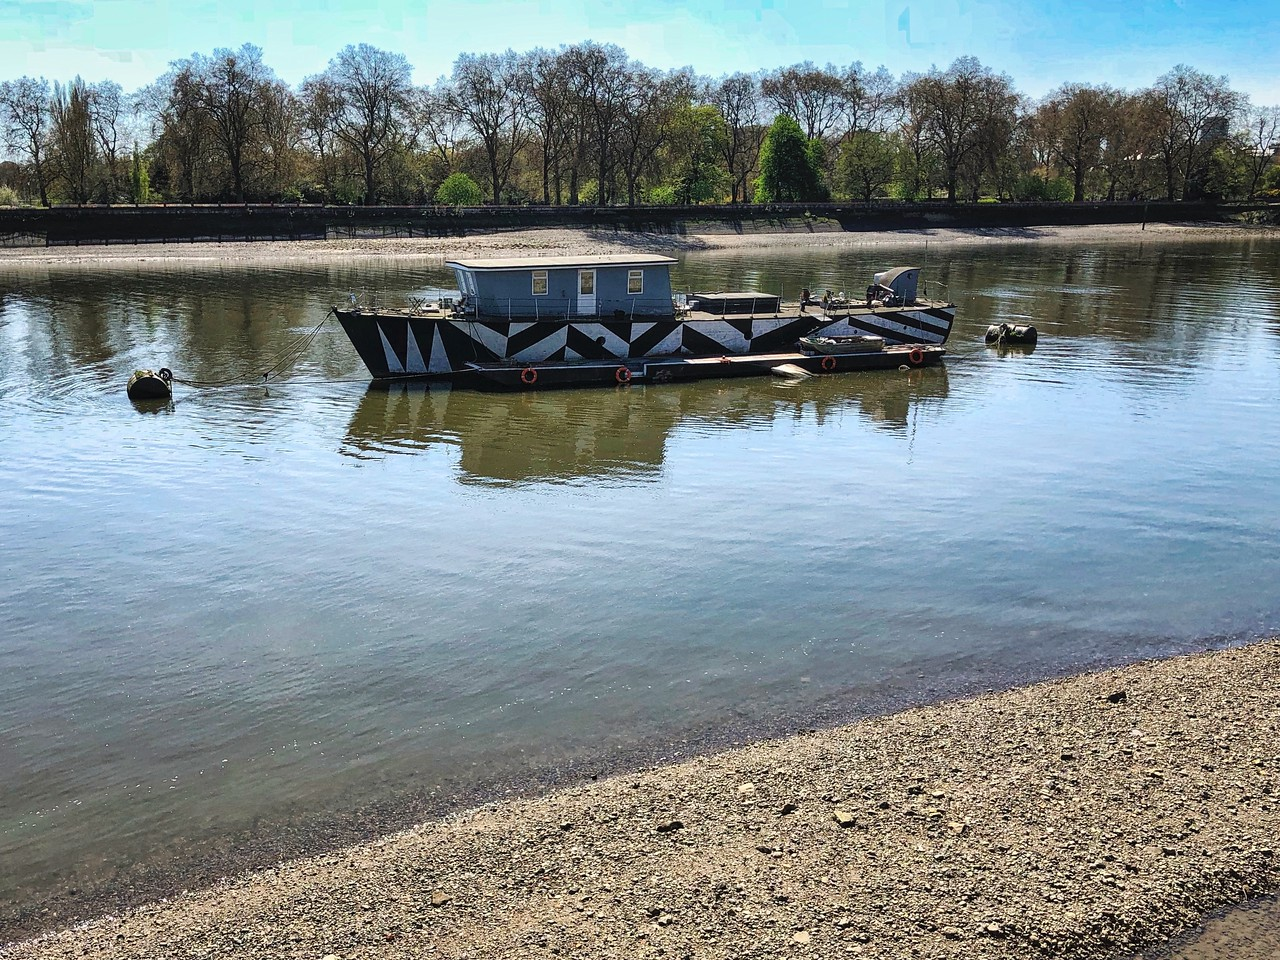 Dazzle boat, low tide at Chelsea Embankment